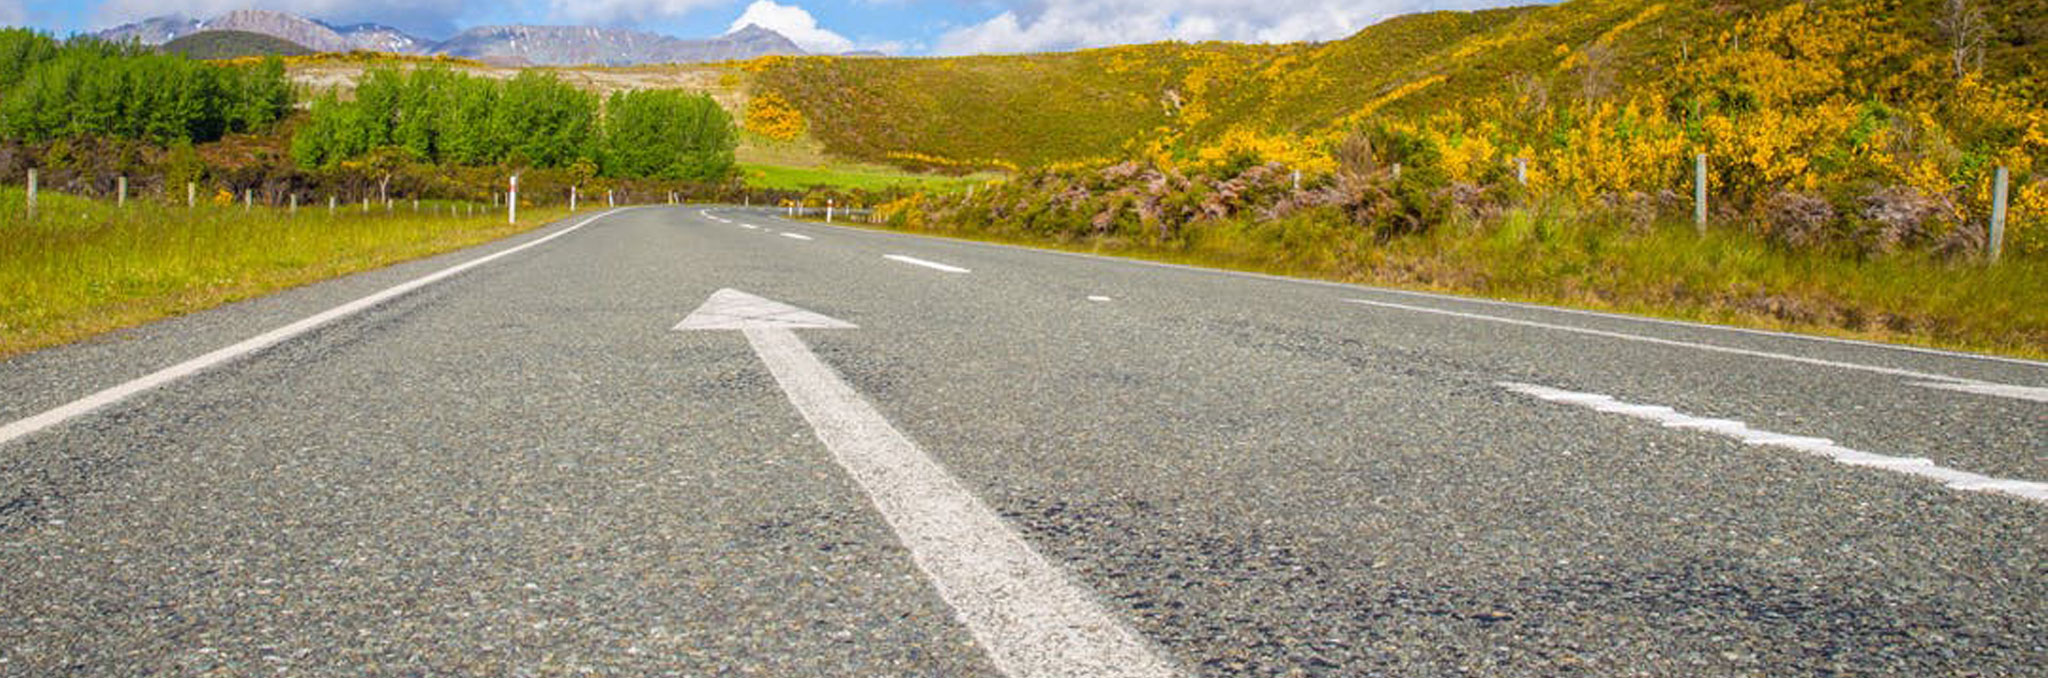 Blog about Road Safety